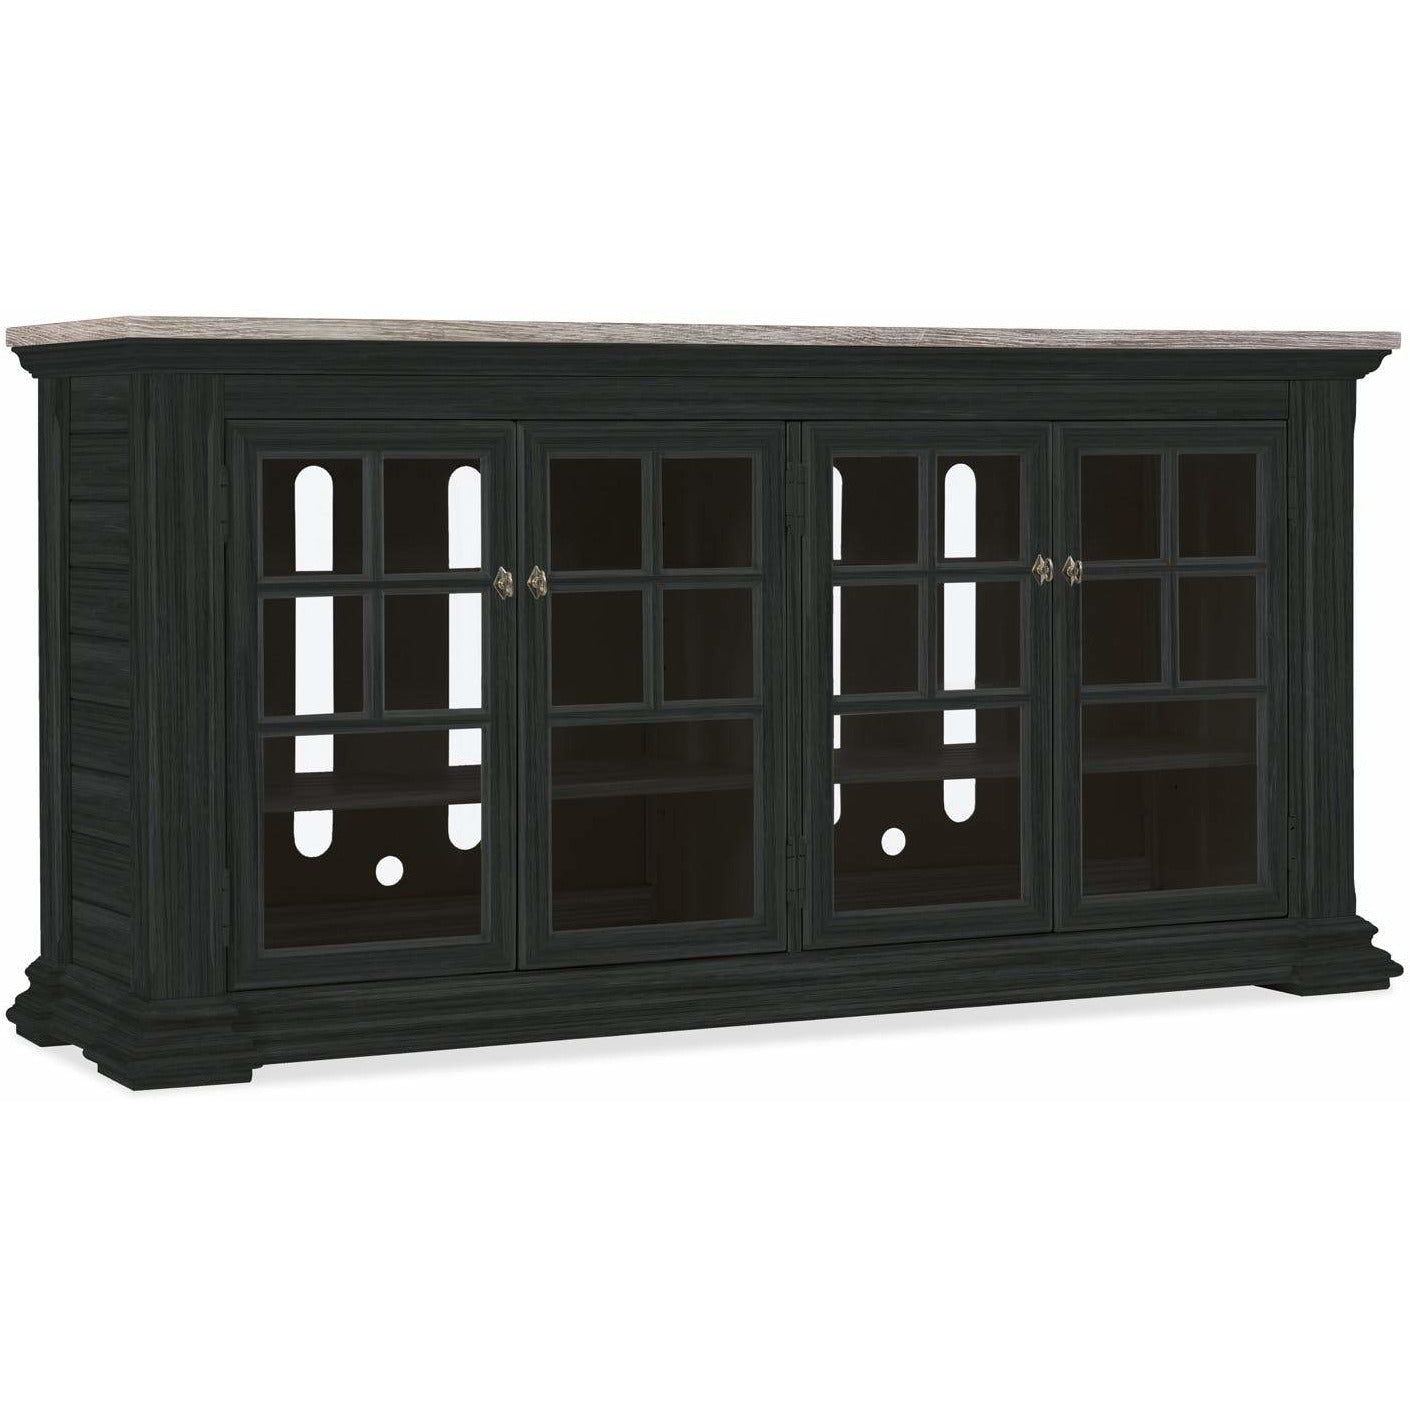 Lagunitas Entertainment Console